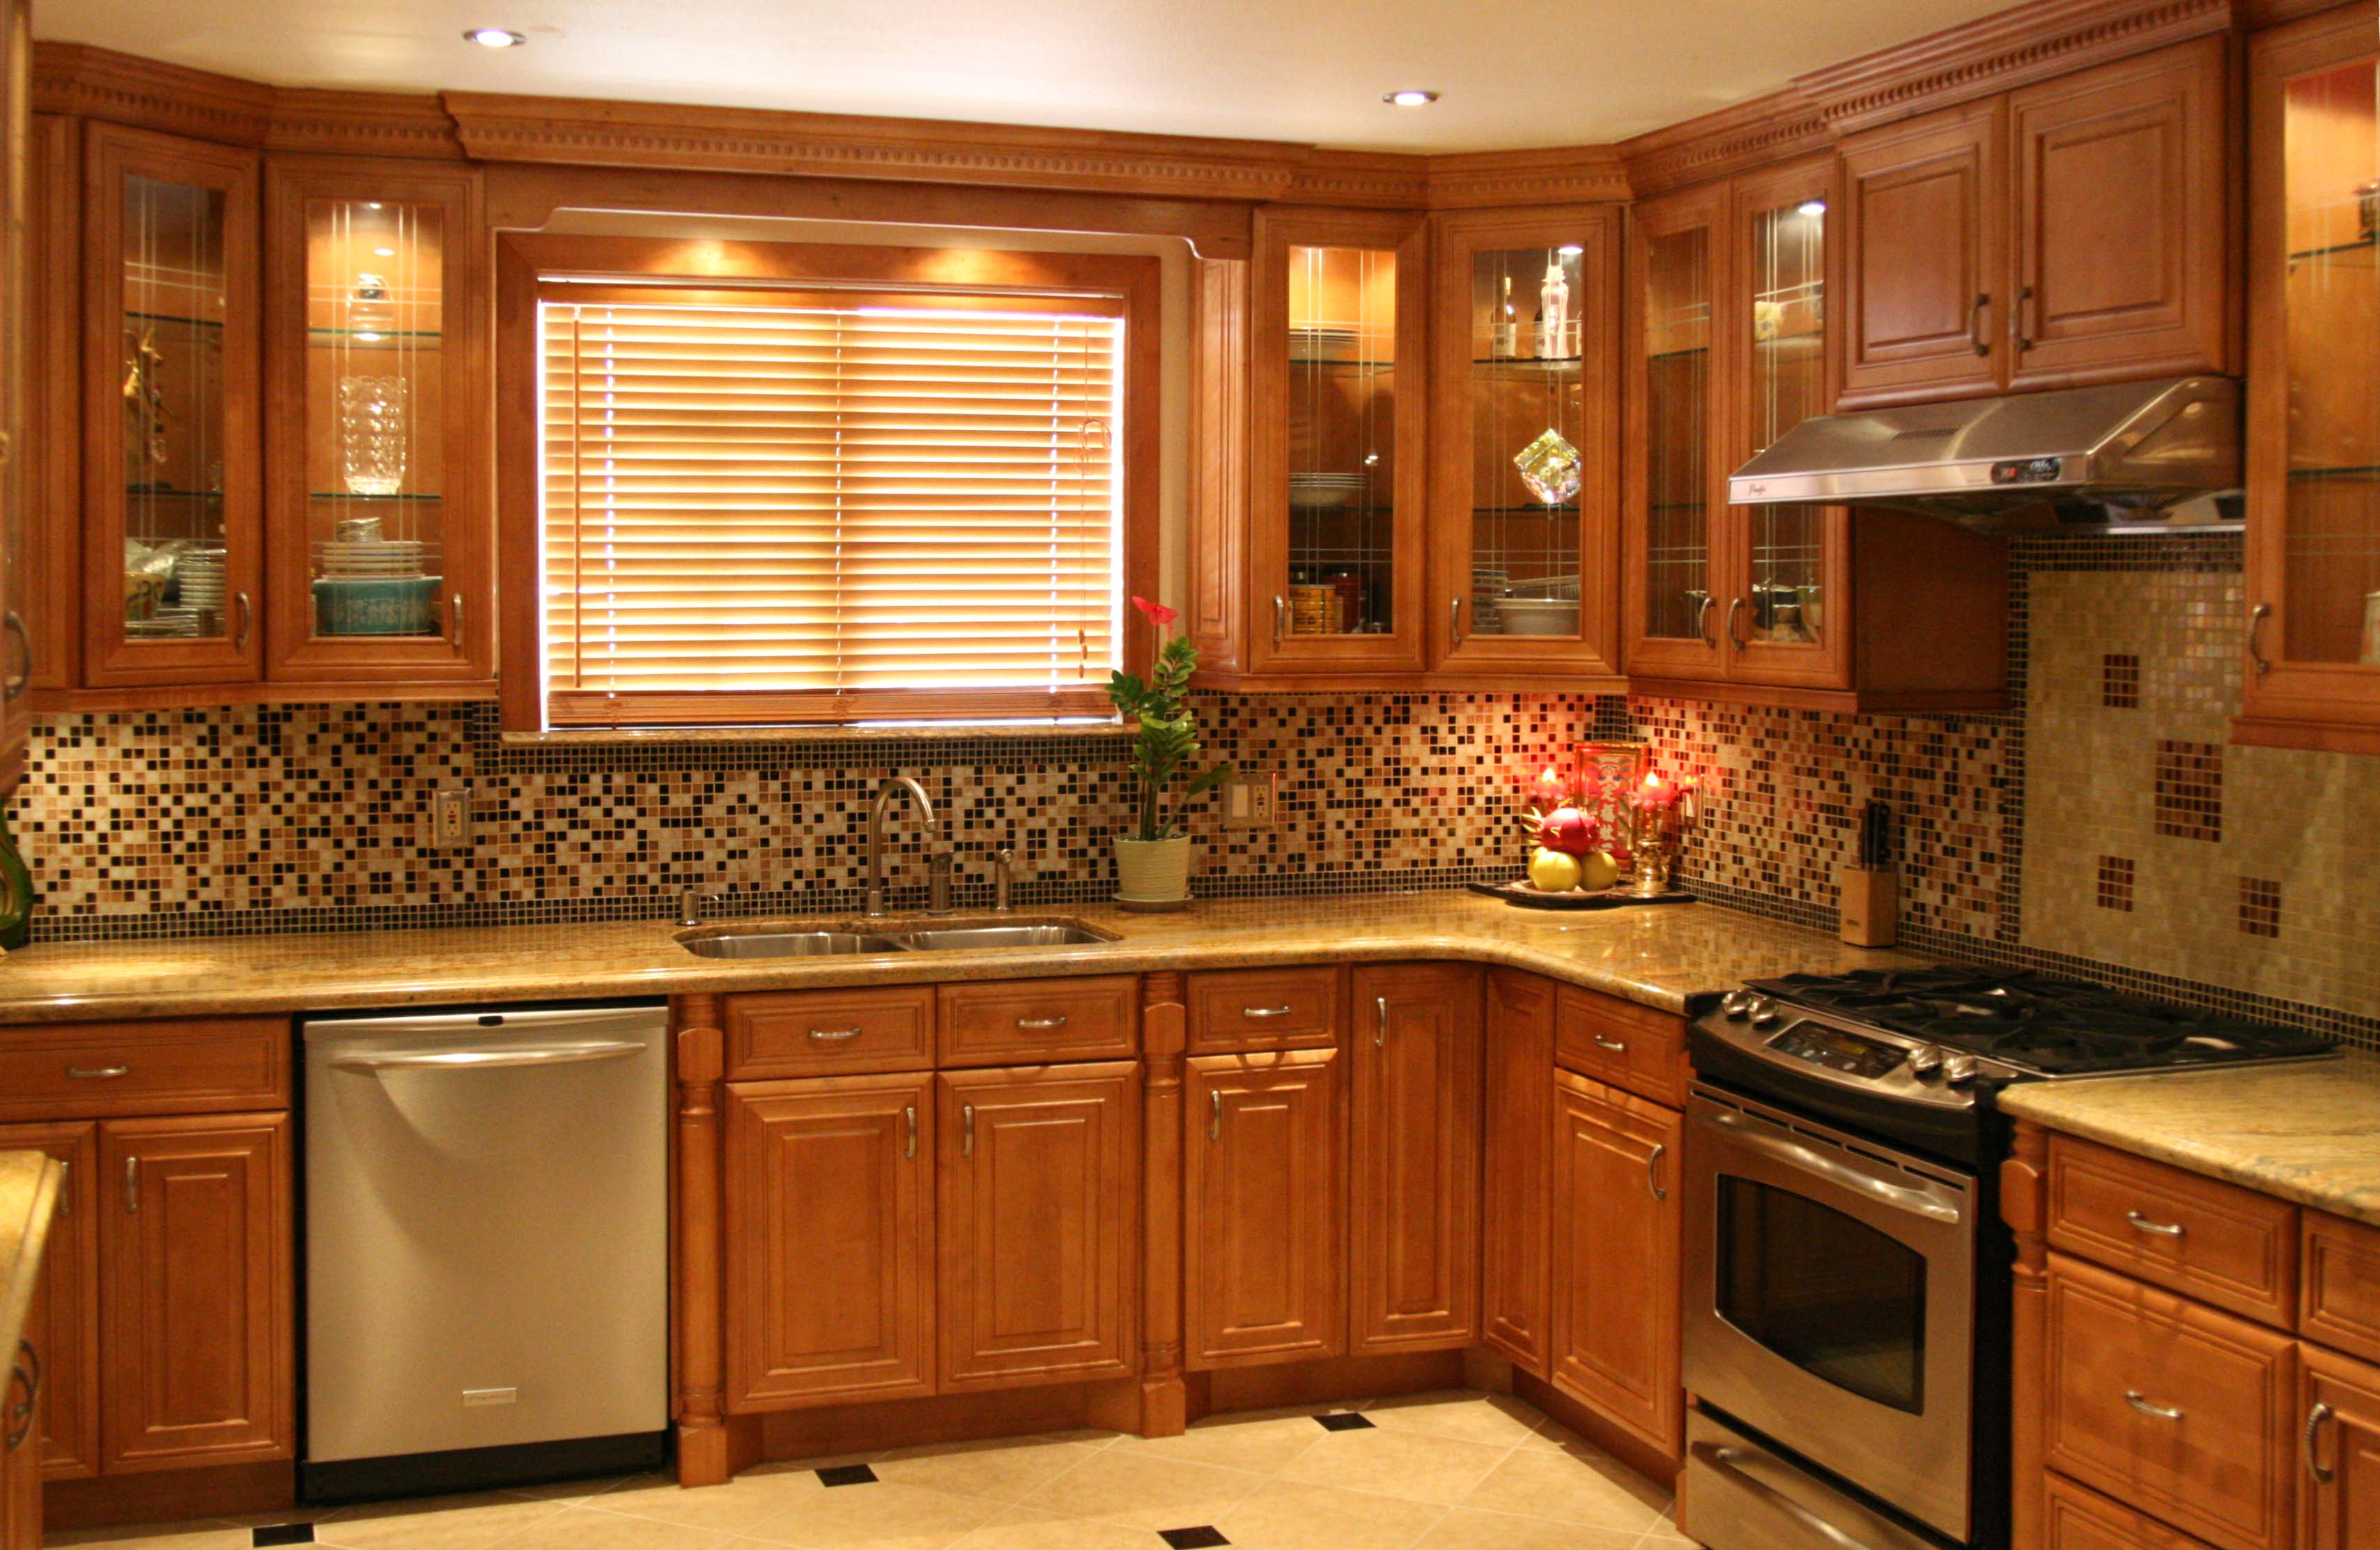 Remarkable Honey Oak Kitchen Cabinets With Backsplash 3416 X 2224 . Full resolution‎  photo, nominally Width 3416 Height 2224 pixels, photo with #C17B0A.